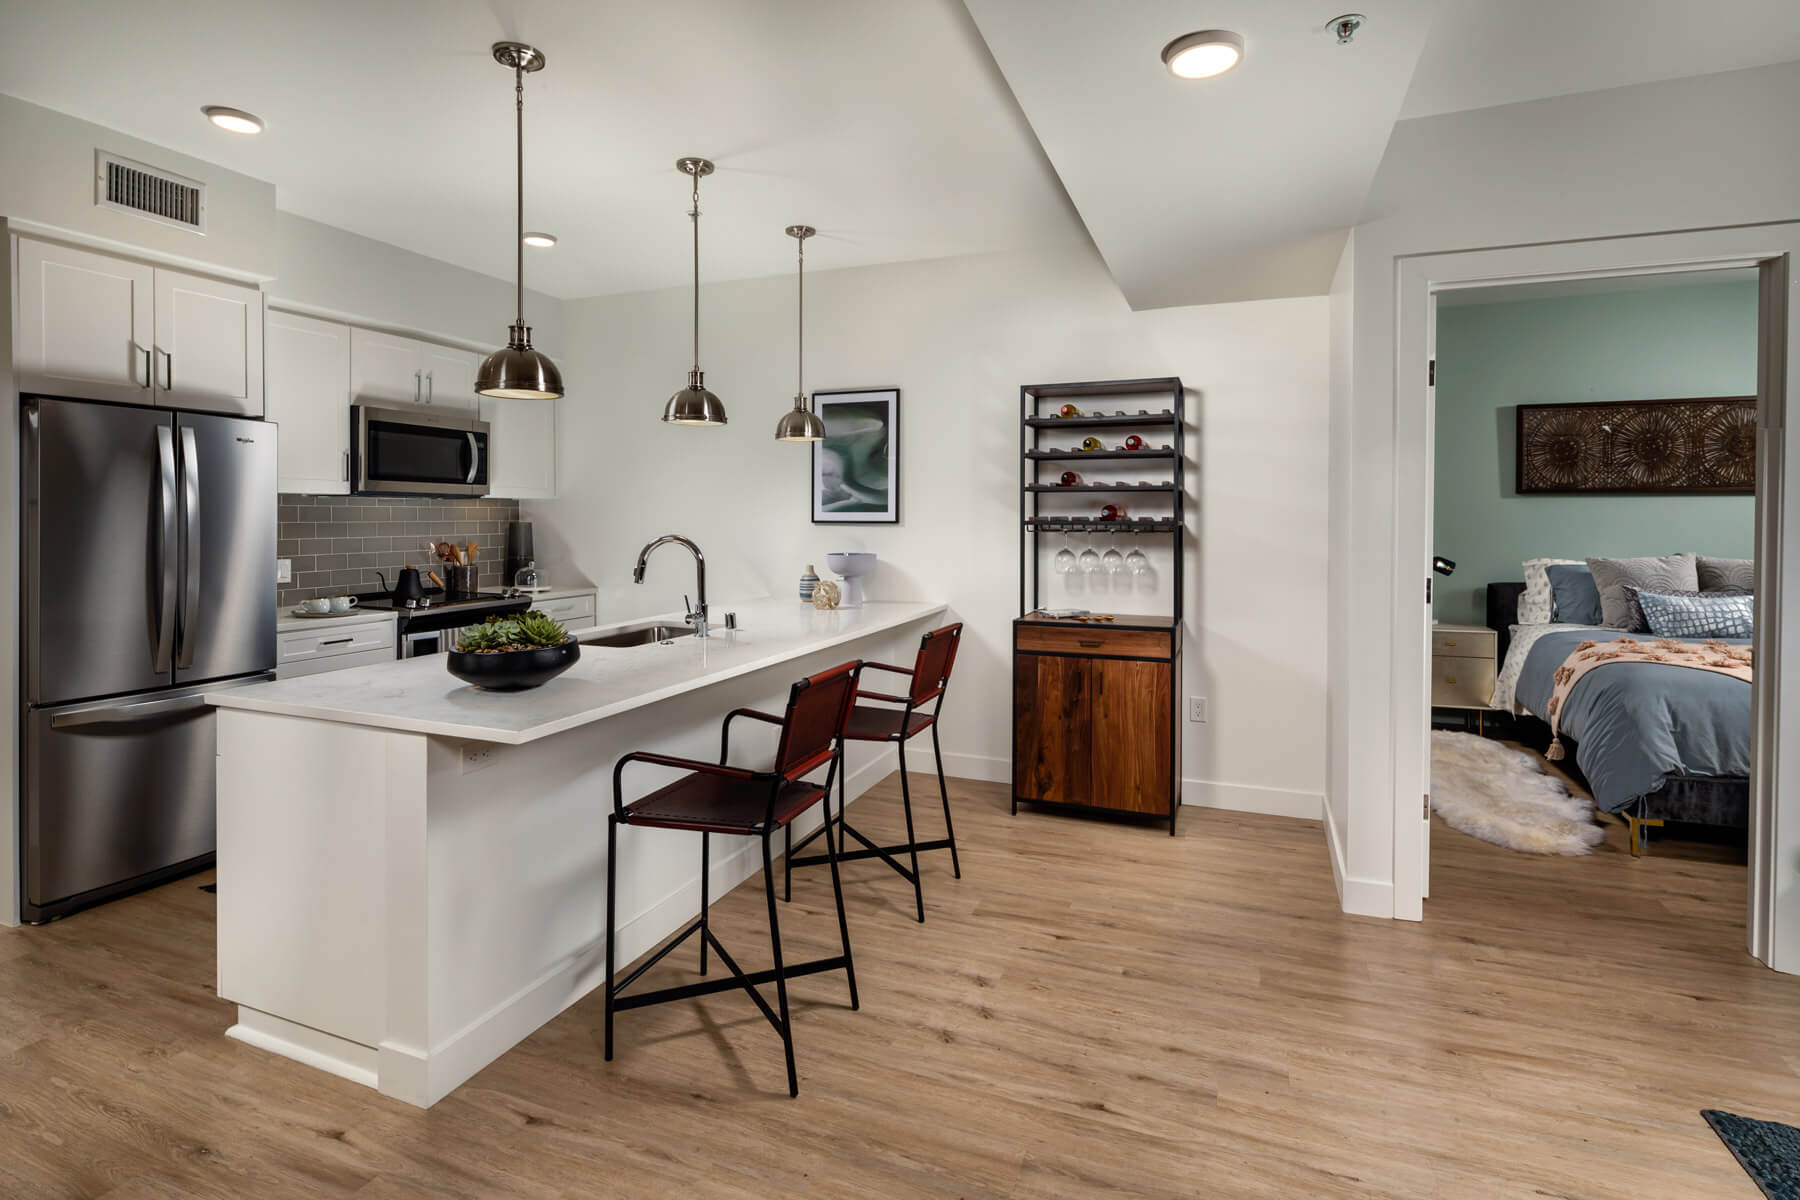 Two Bedroom Residence Kitchen